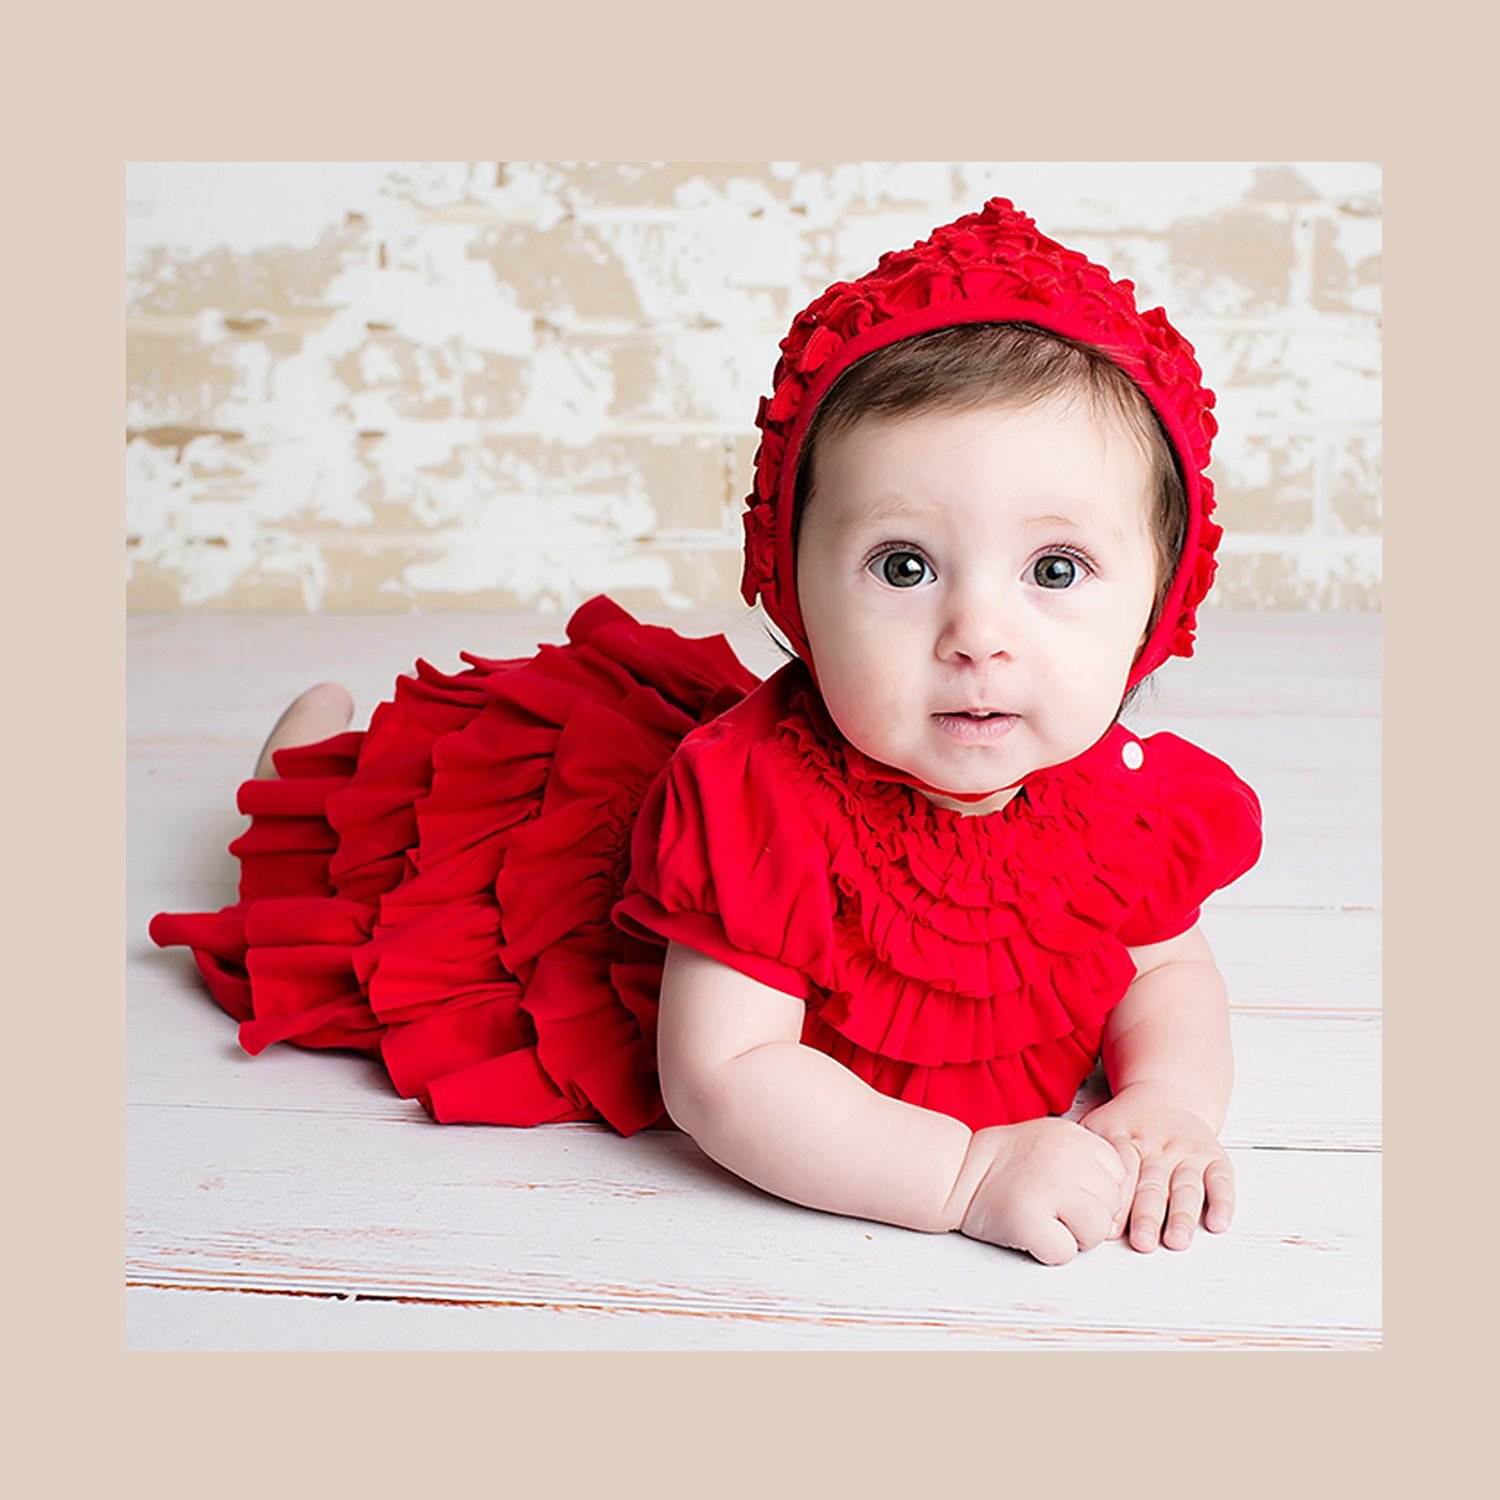 Little Red Riding Hood Inspiration | Baby Bling Street Baby Fashion Boutique